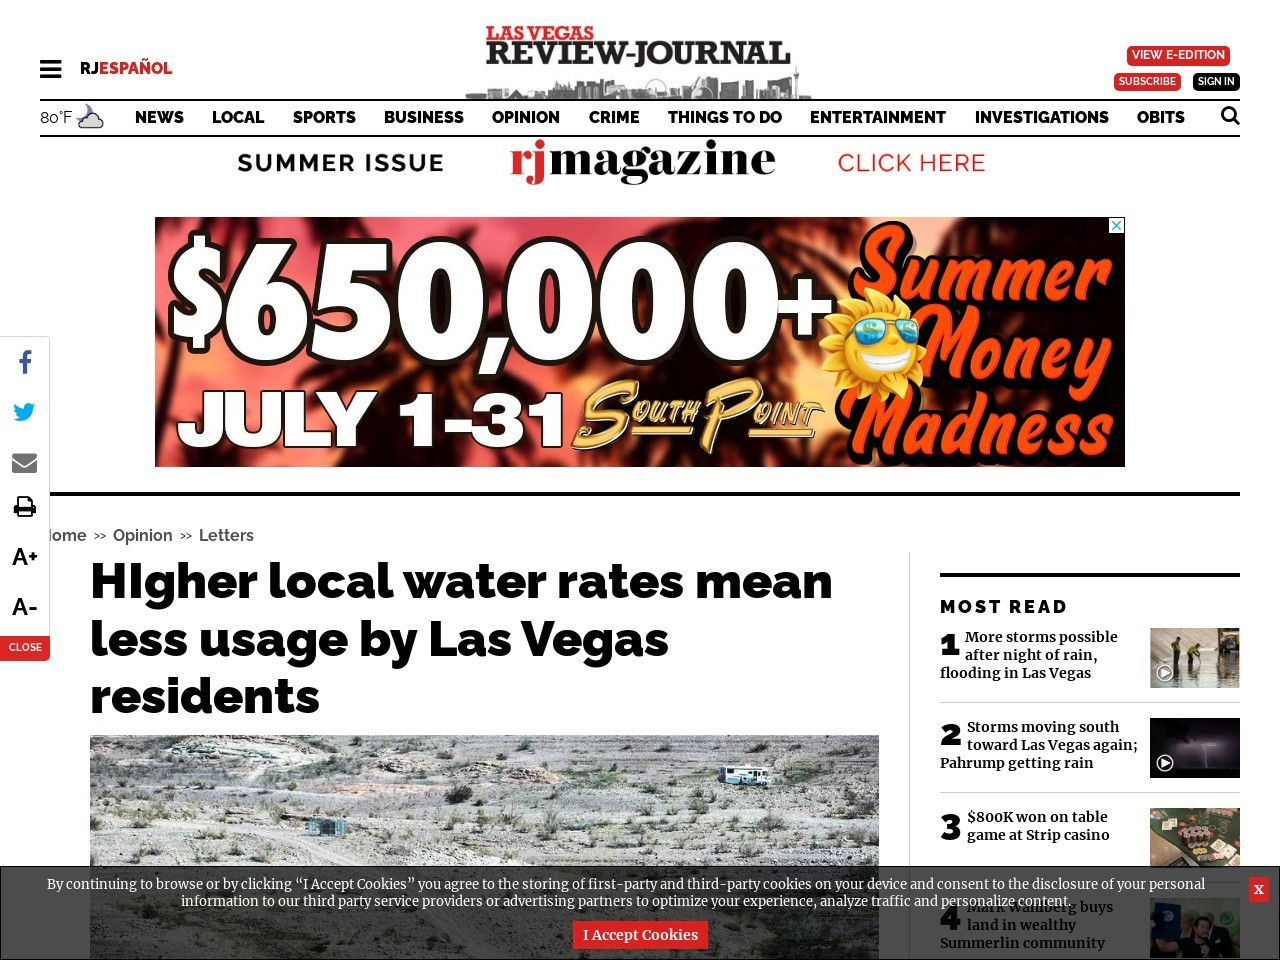 HIgher local water rates mean less usage by Las Vegas residents